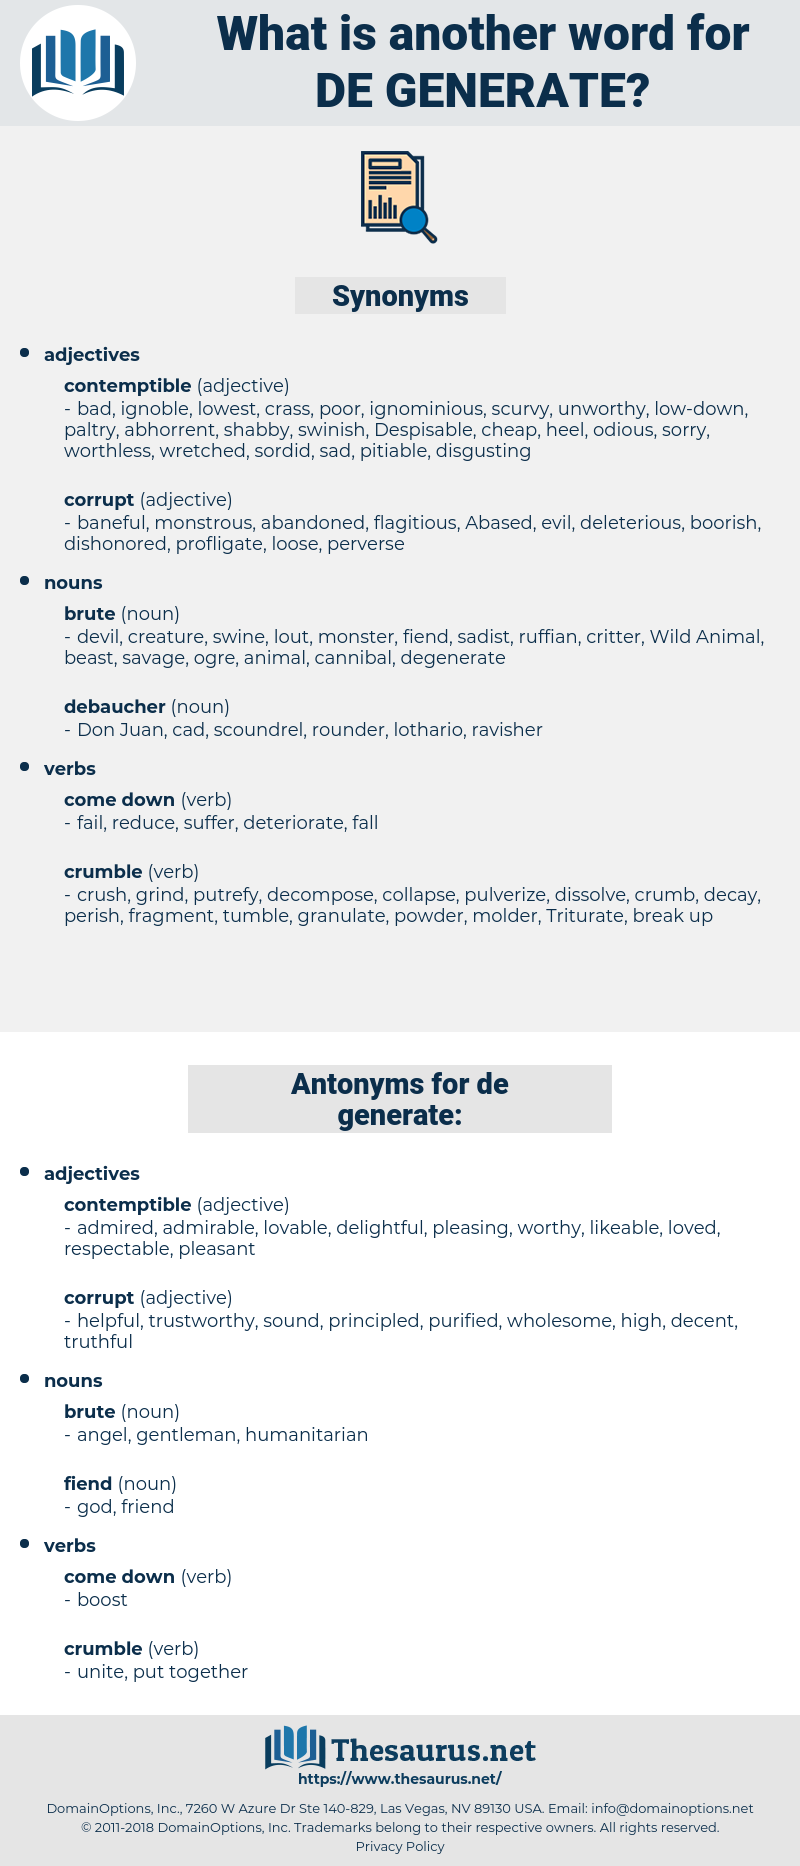 de-generate, synonym de-generate, another word for de-generate, words like de-generate, thesaurus de-generate